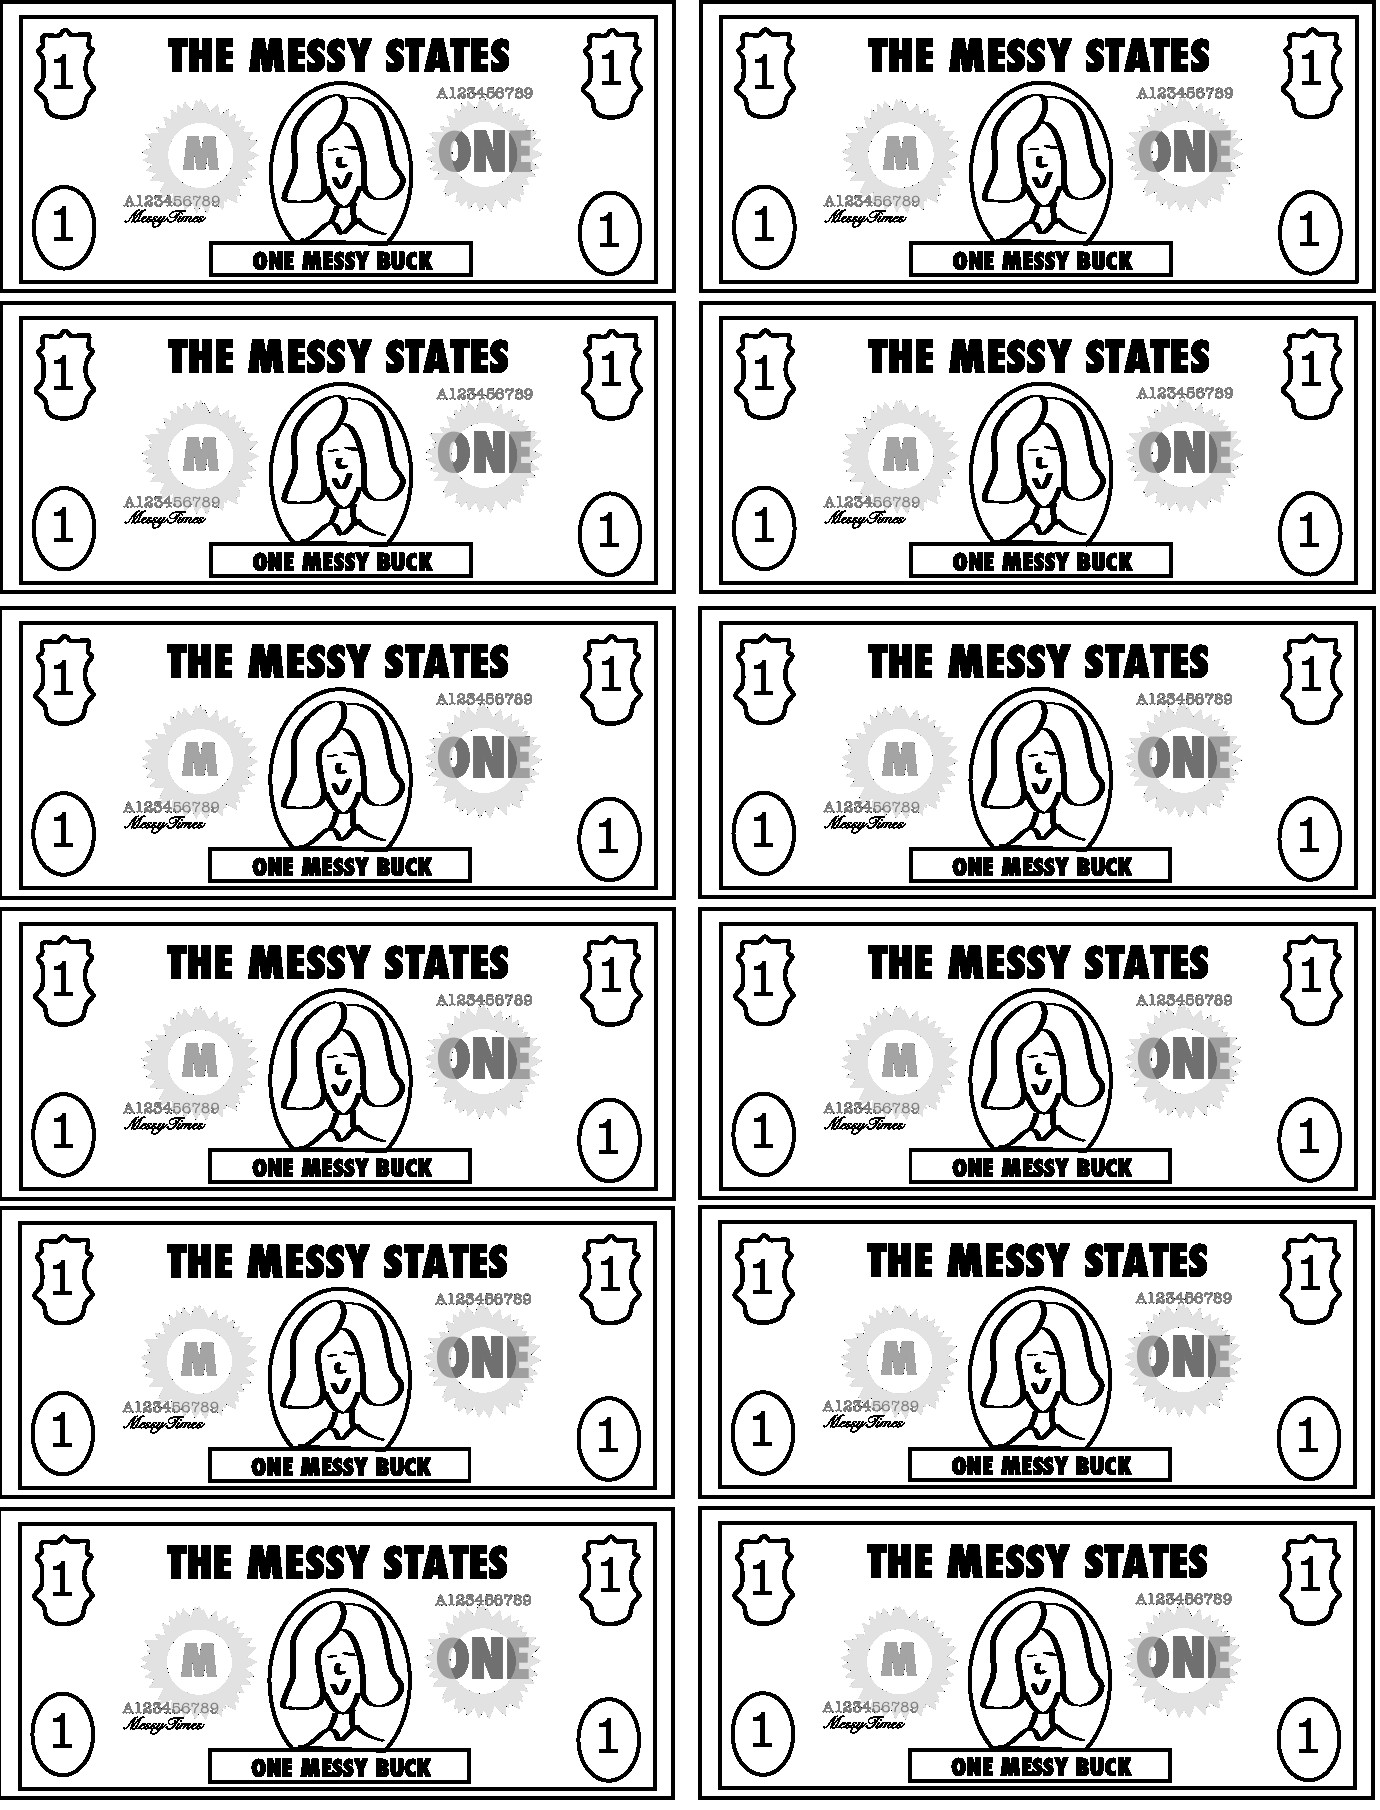 Bible Bucks Template Messy Bucks – Print Your Own Reward Play Money – Messy Times